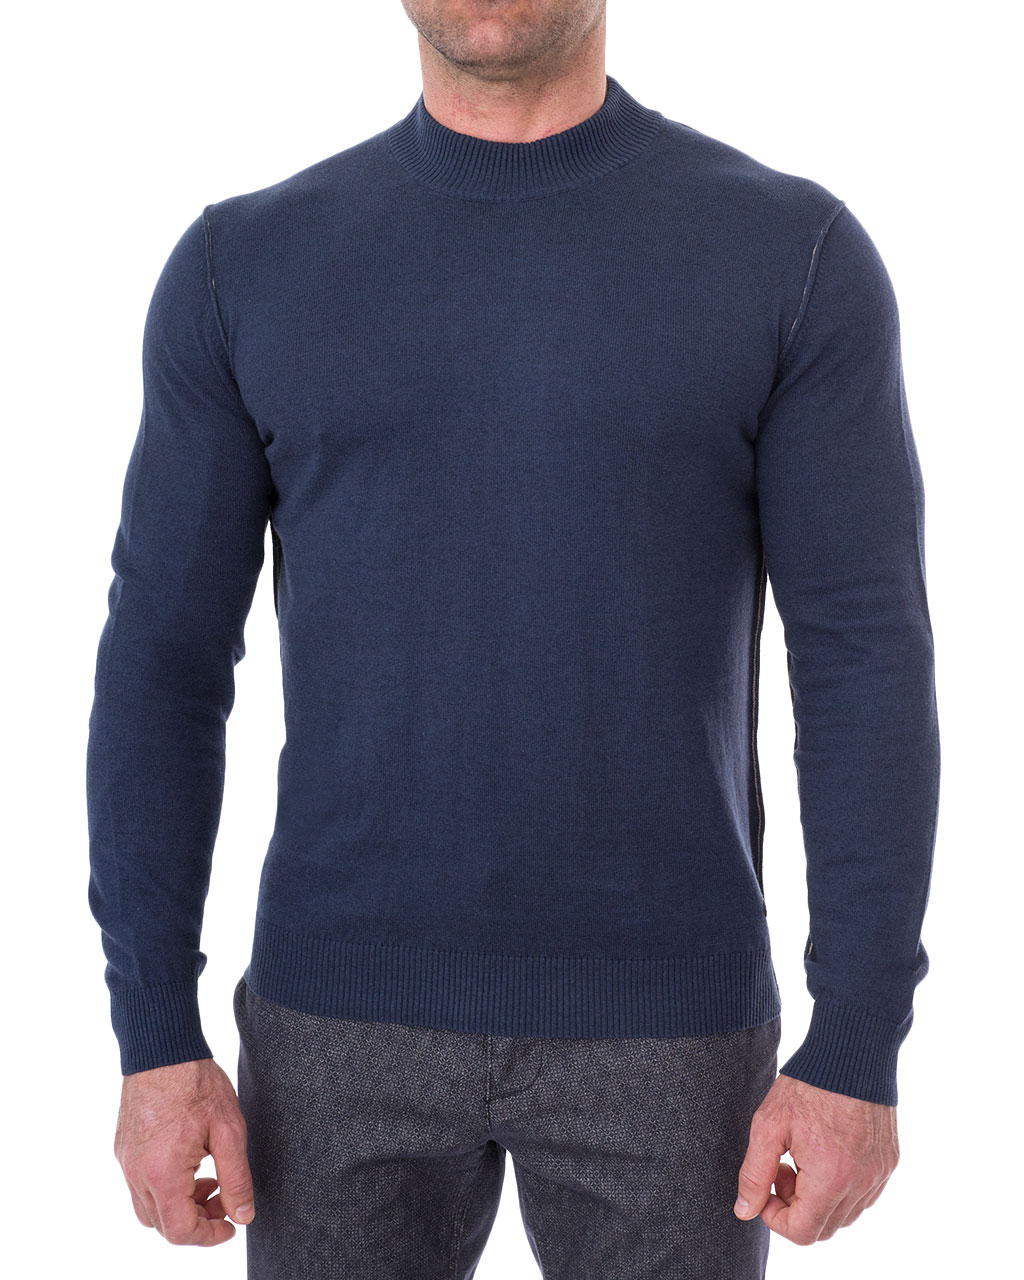 Men's jumper 75217-680-487625/7-81    (1)